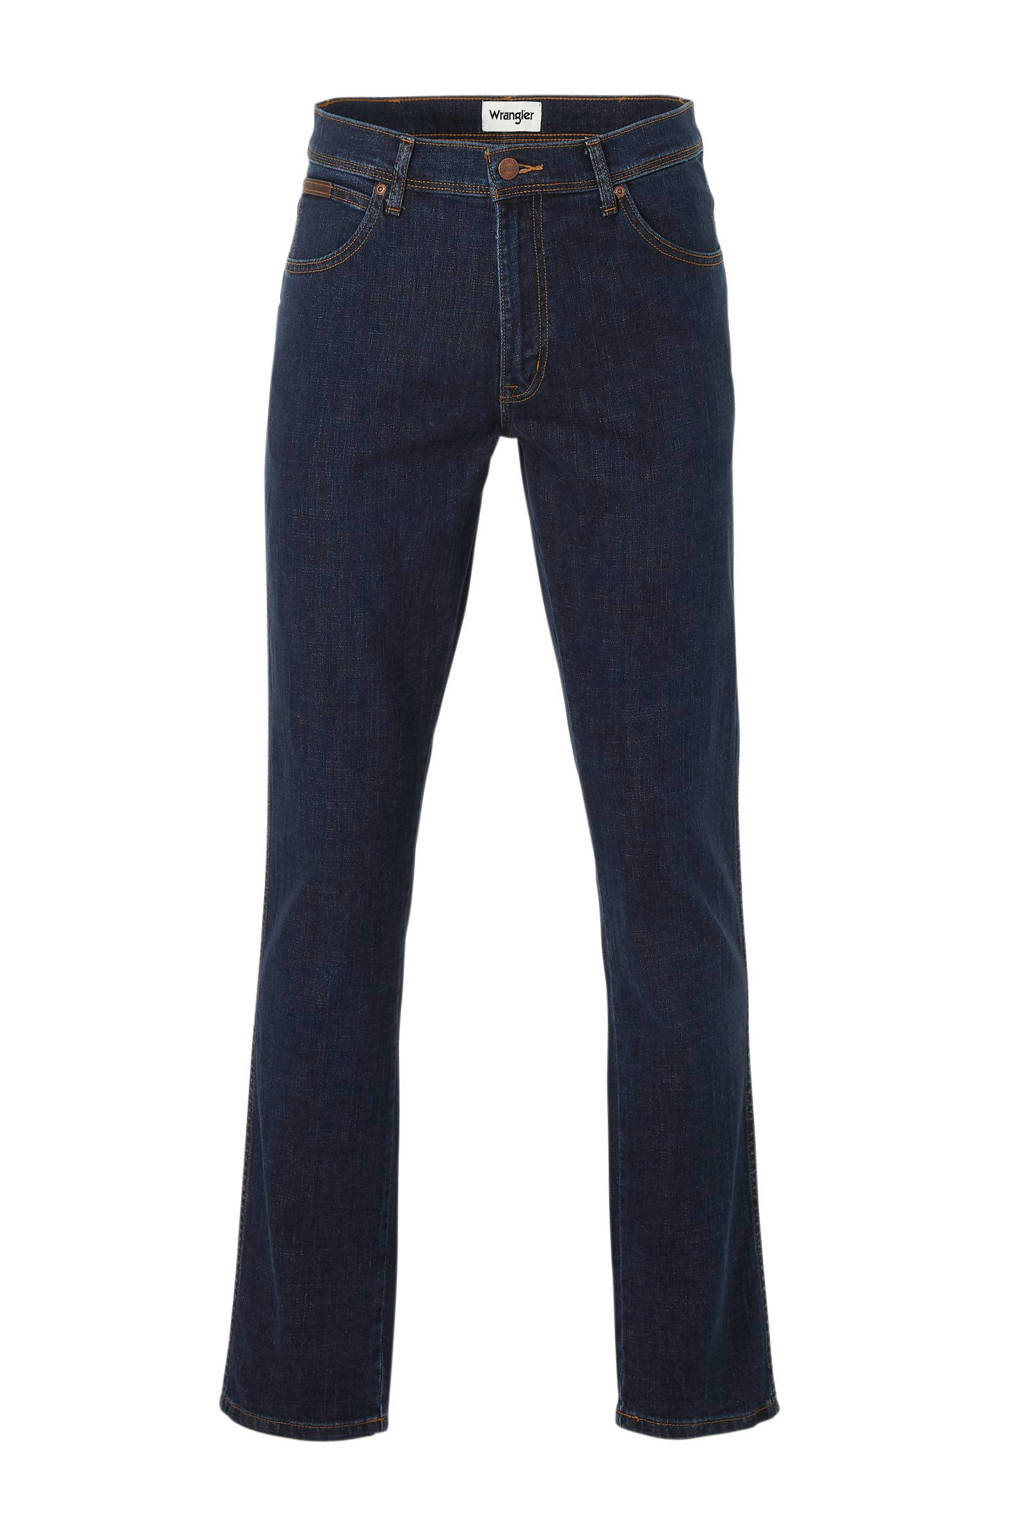 Wrangler texas slim fit jeans Texas cross game, CROSS GAME